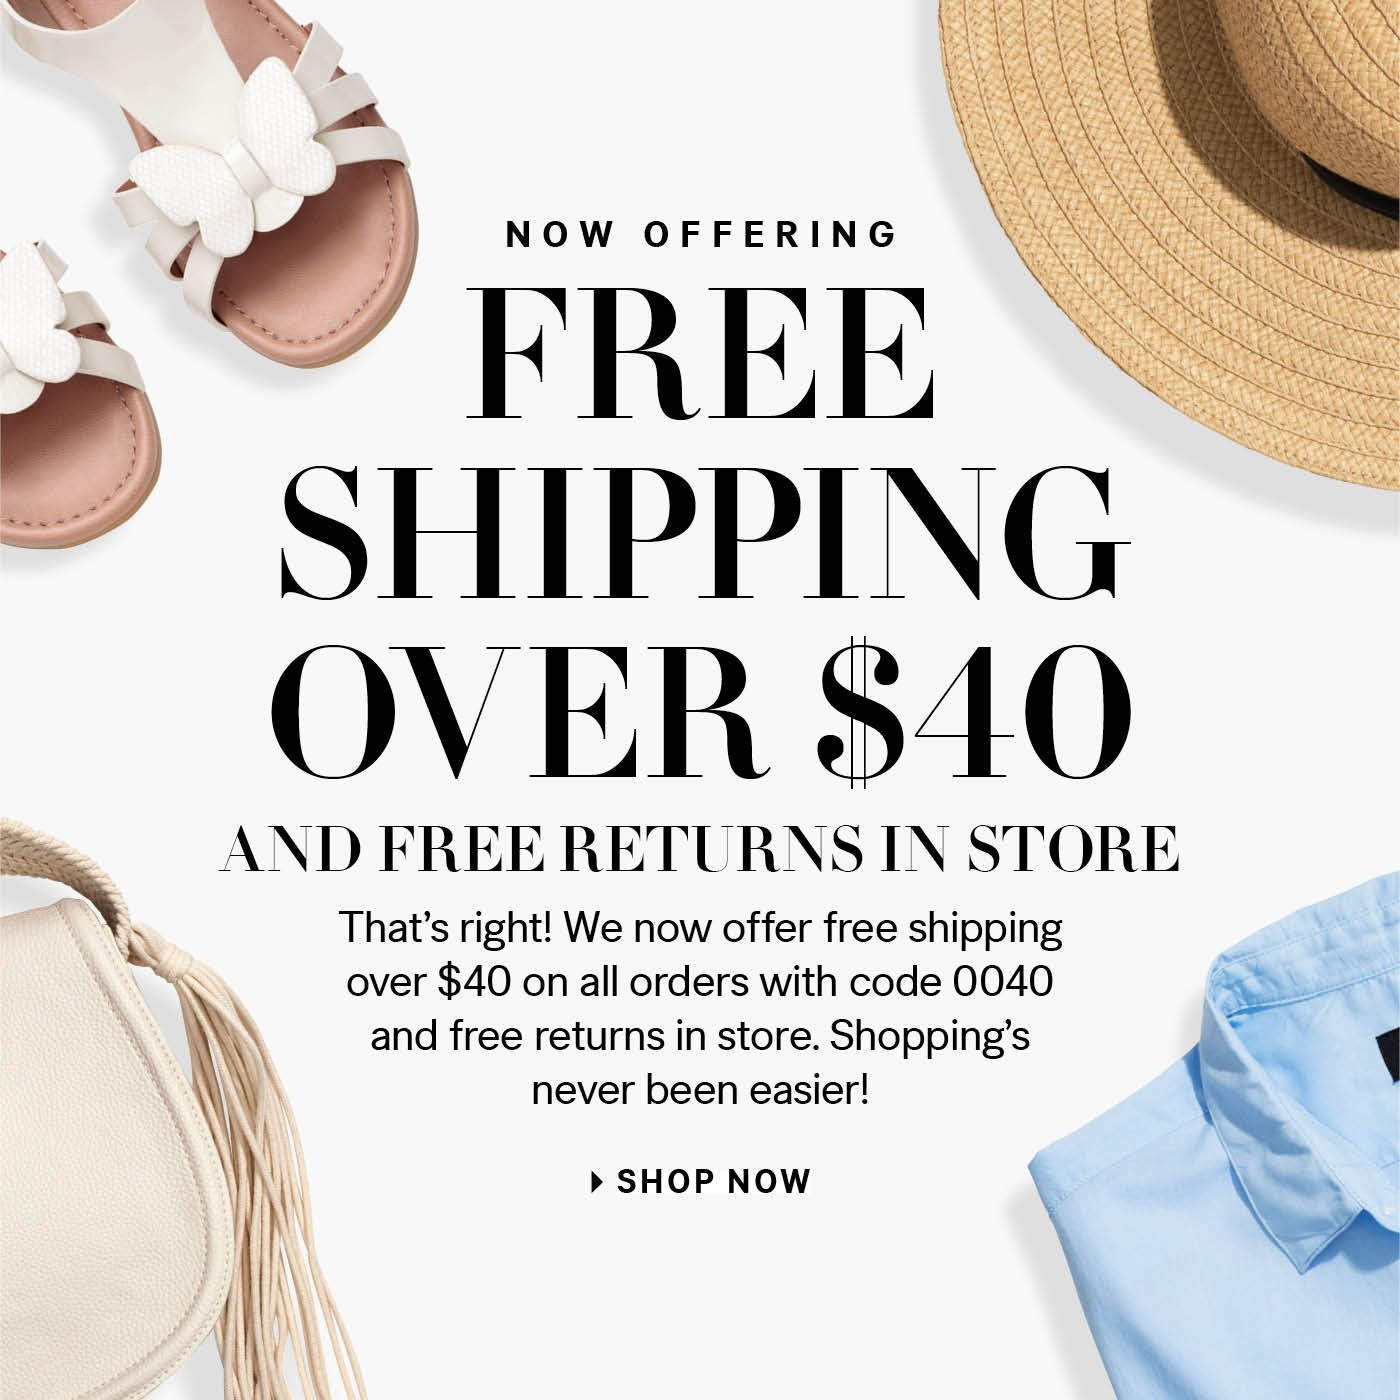 H&M free shipping campaign